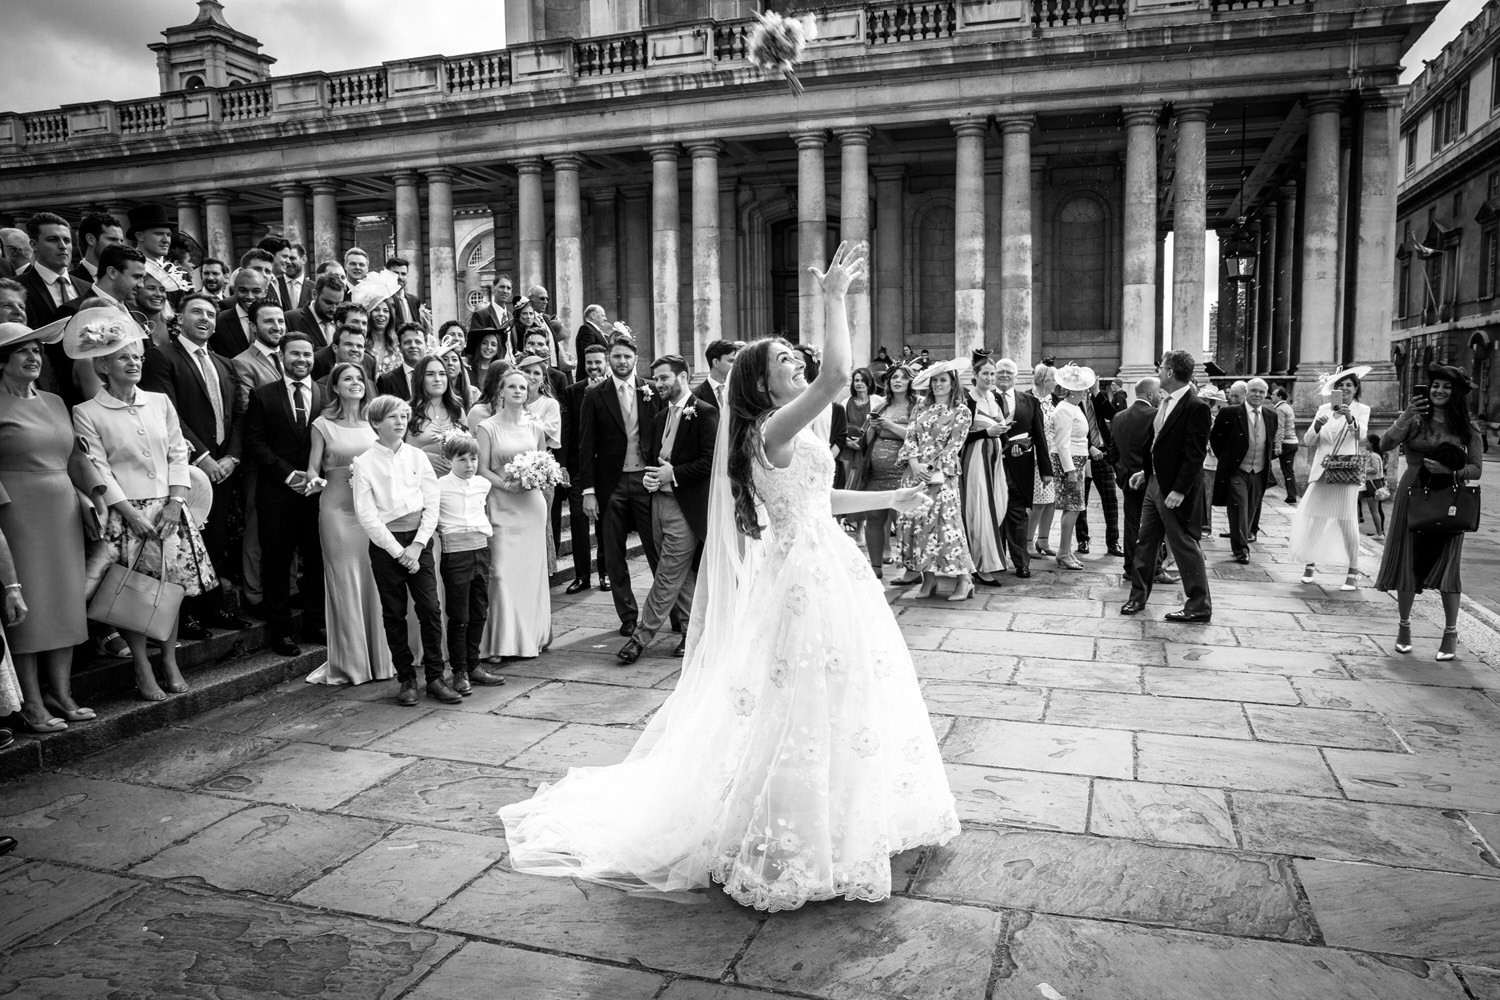 Littleton-Rose-Natural-History-Museum-London-Wedding-Planners-Throwing-The-Bouquet.jpg